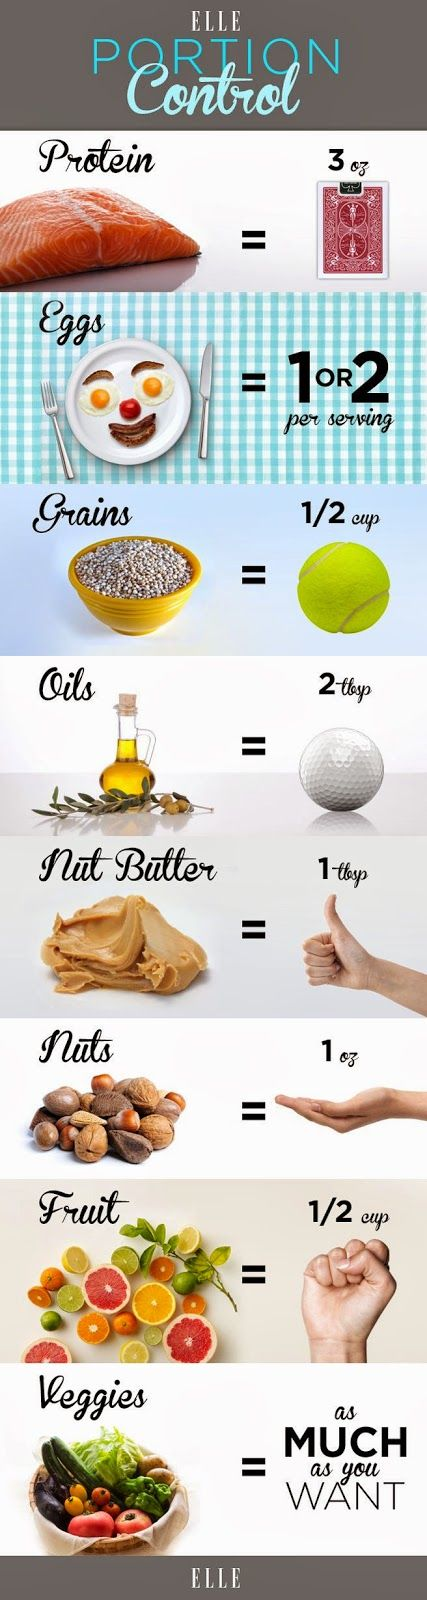 A+Handy+Visual+Guide+to+Portion+Control.jpg 427×1,600 pixels